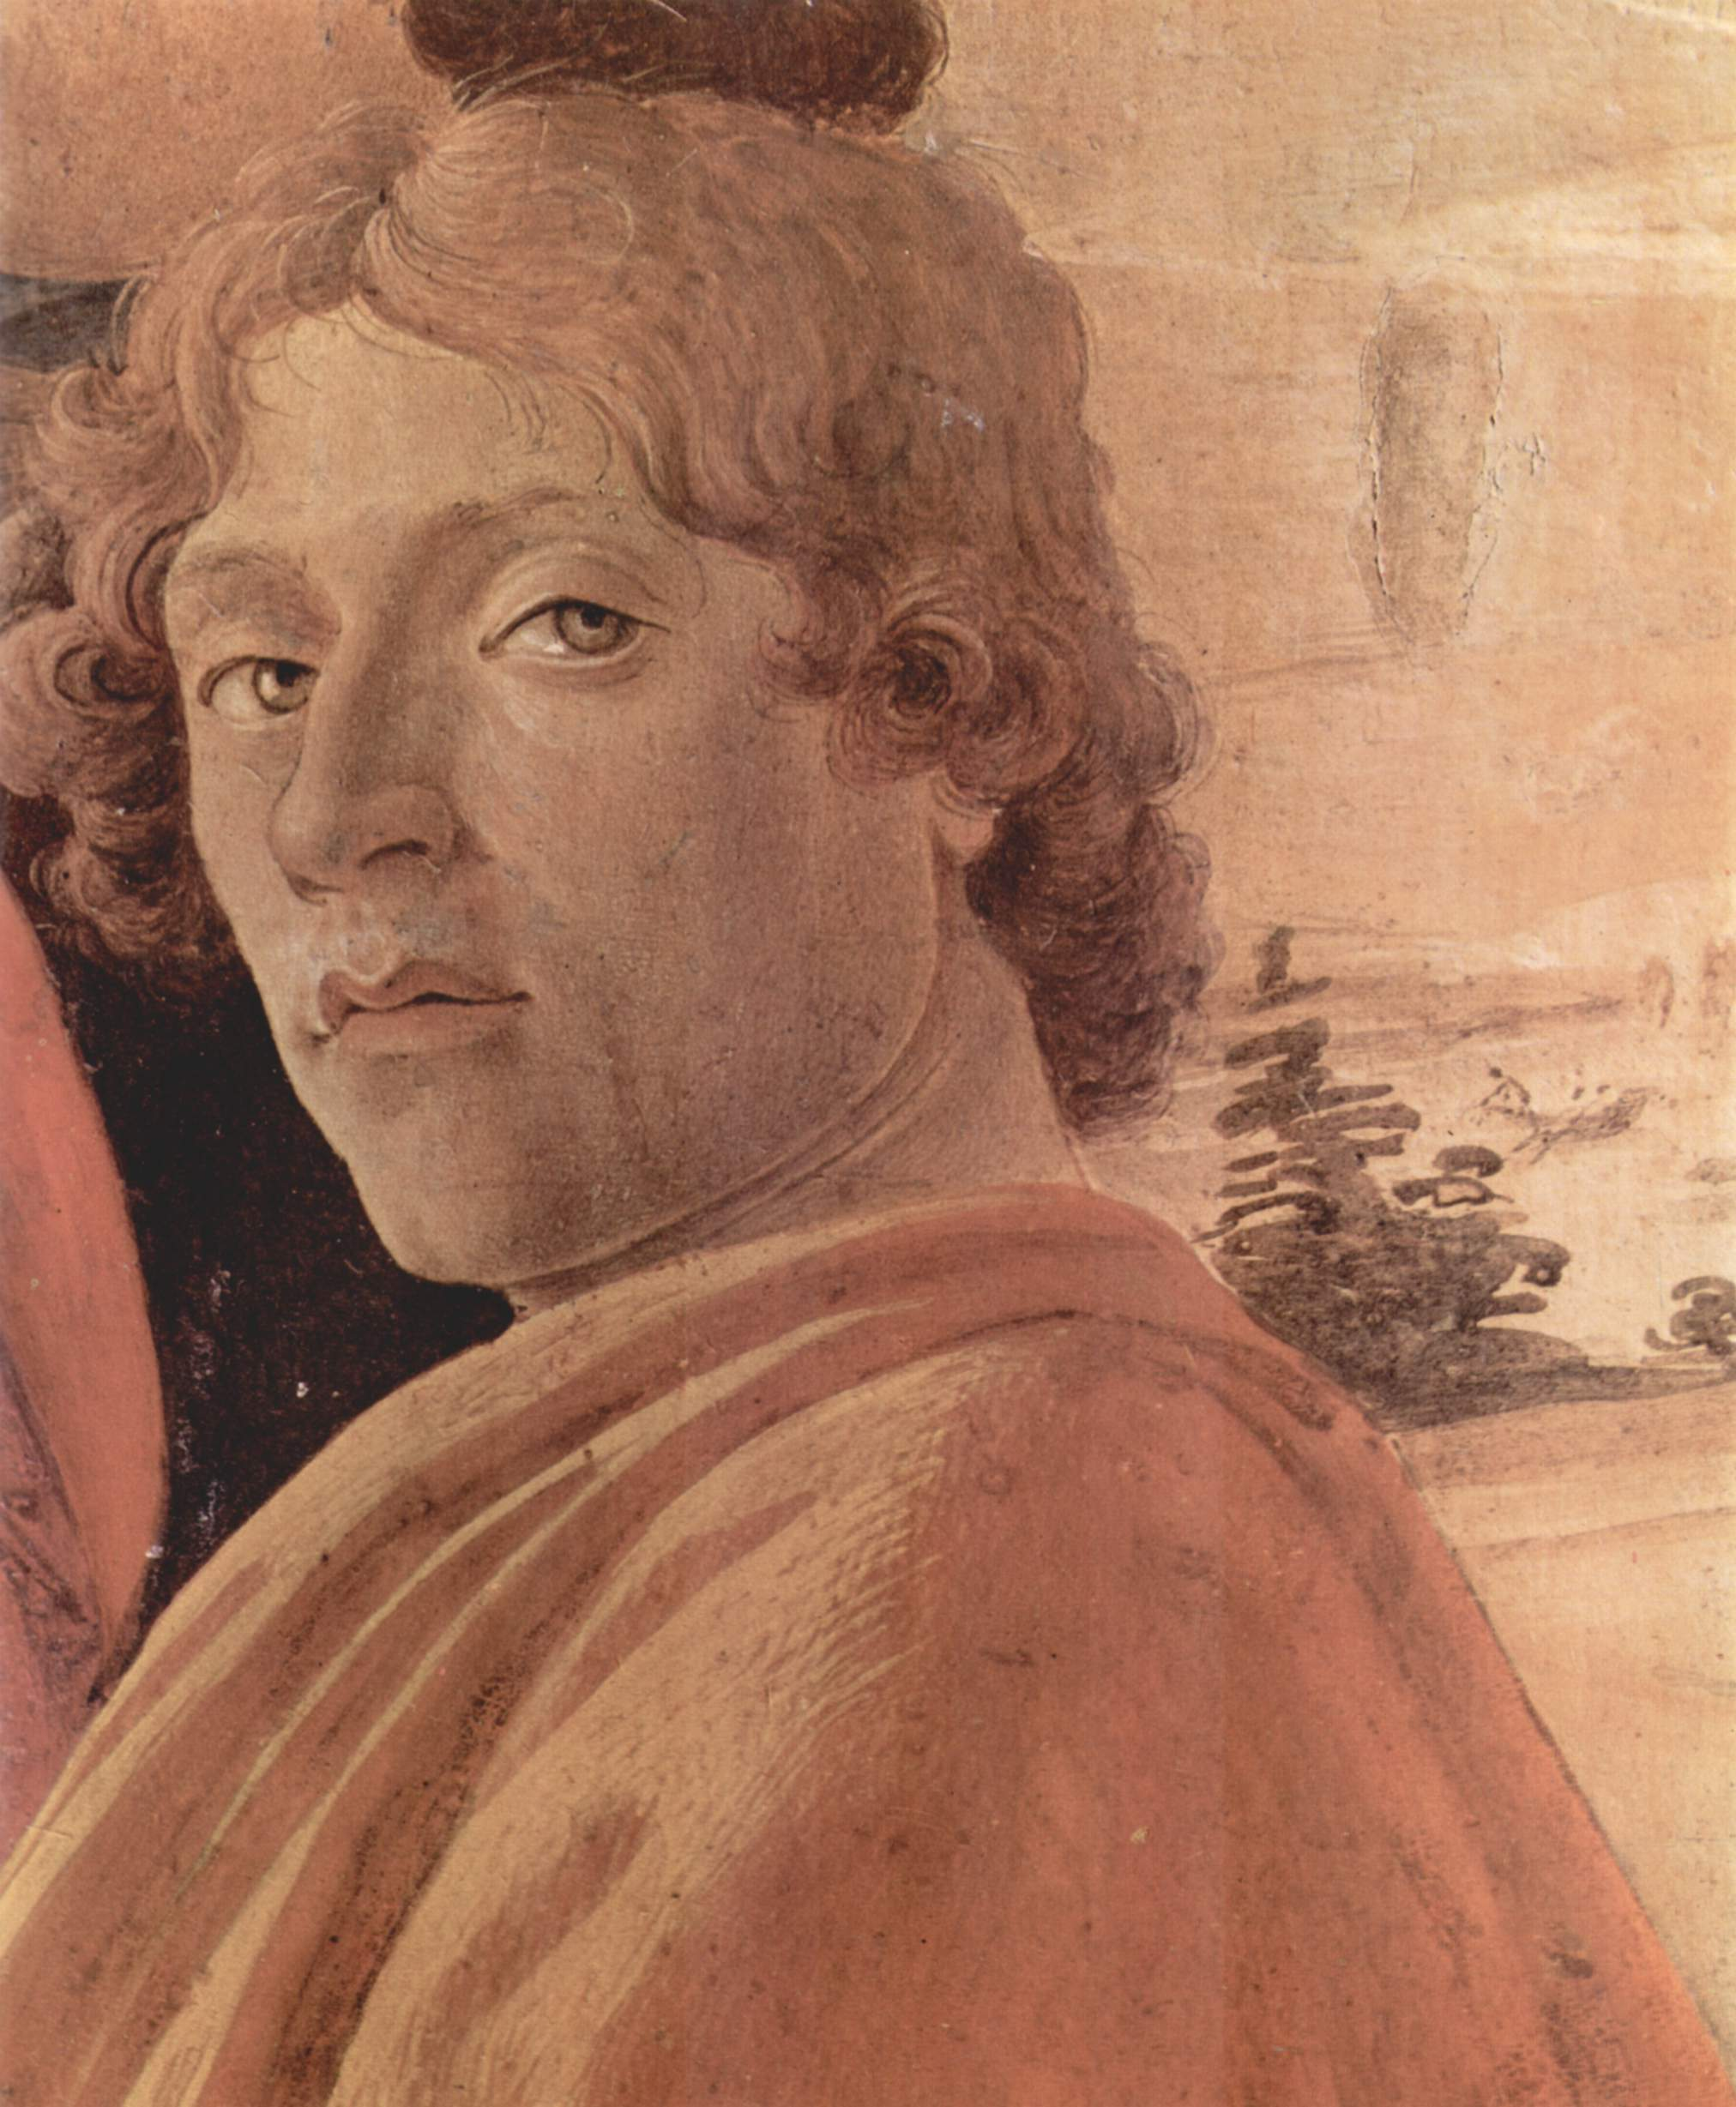 a biography of sandro botticelli the greatest painter of the florentine renaissance Artists sandro botticelli florentine painter, neglected for centuries but now one of the best-loved artists of the renaissance.